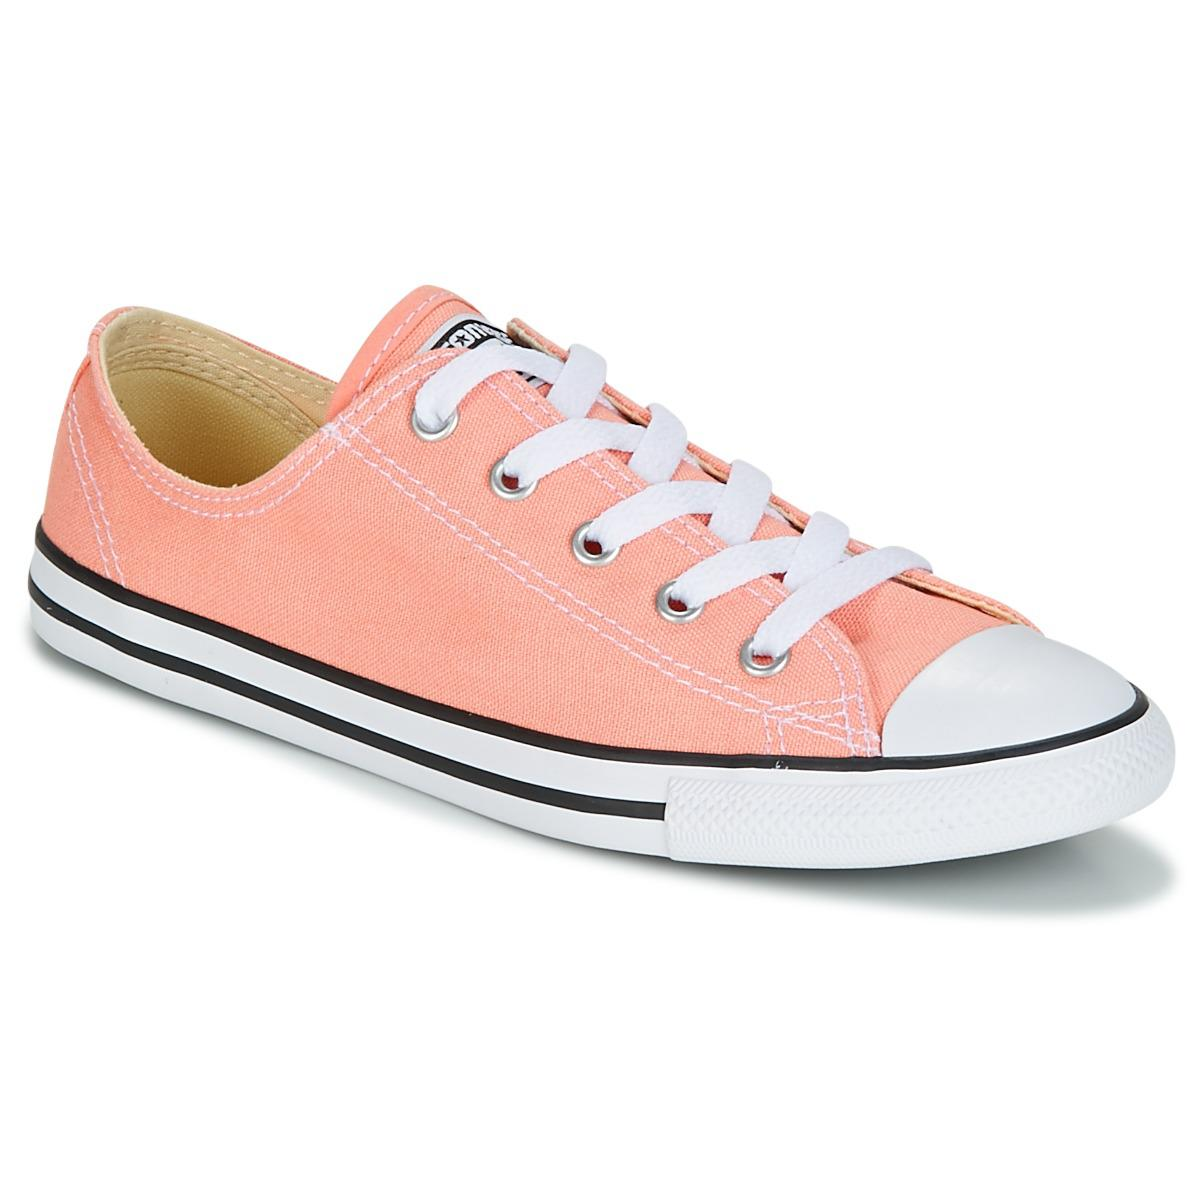 7c511e2d6afe2e Converse - Pink All Star Dainty Oxford Shoes Trainers - Lyst. View  fullscreen